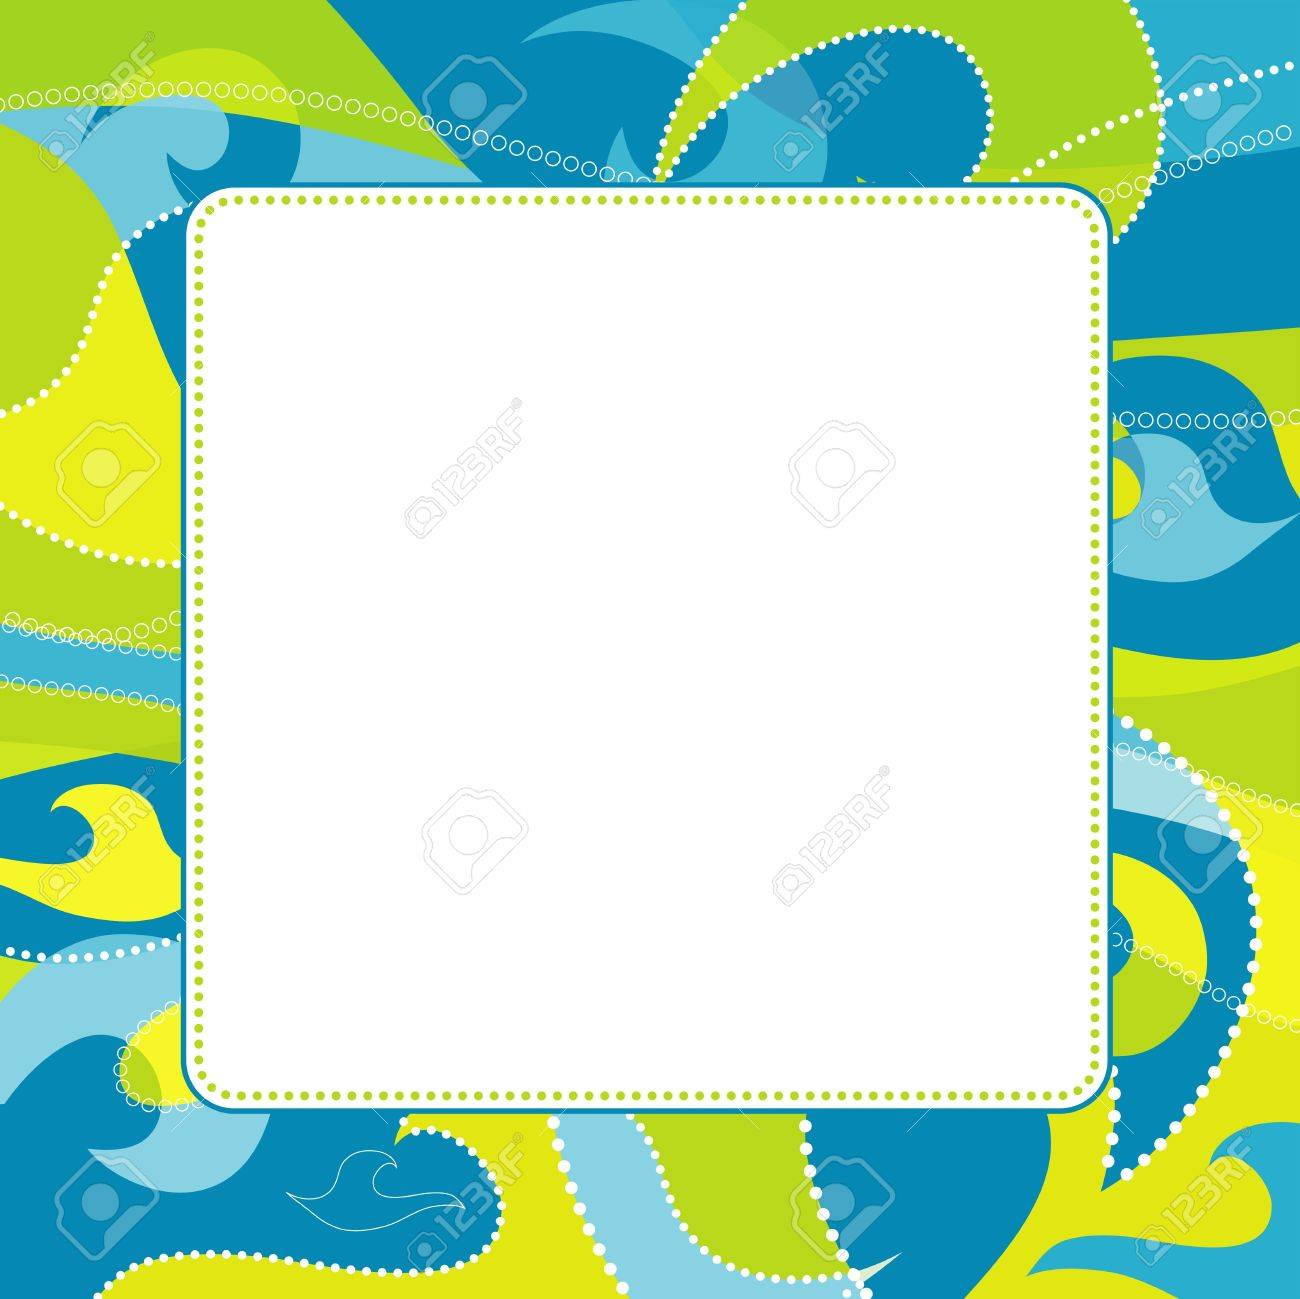 hight resolution of art background border card circle clipart composition design